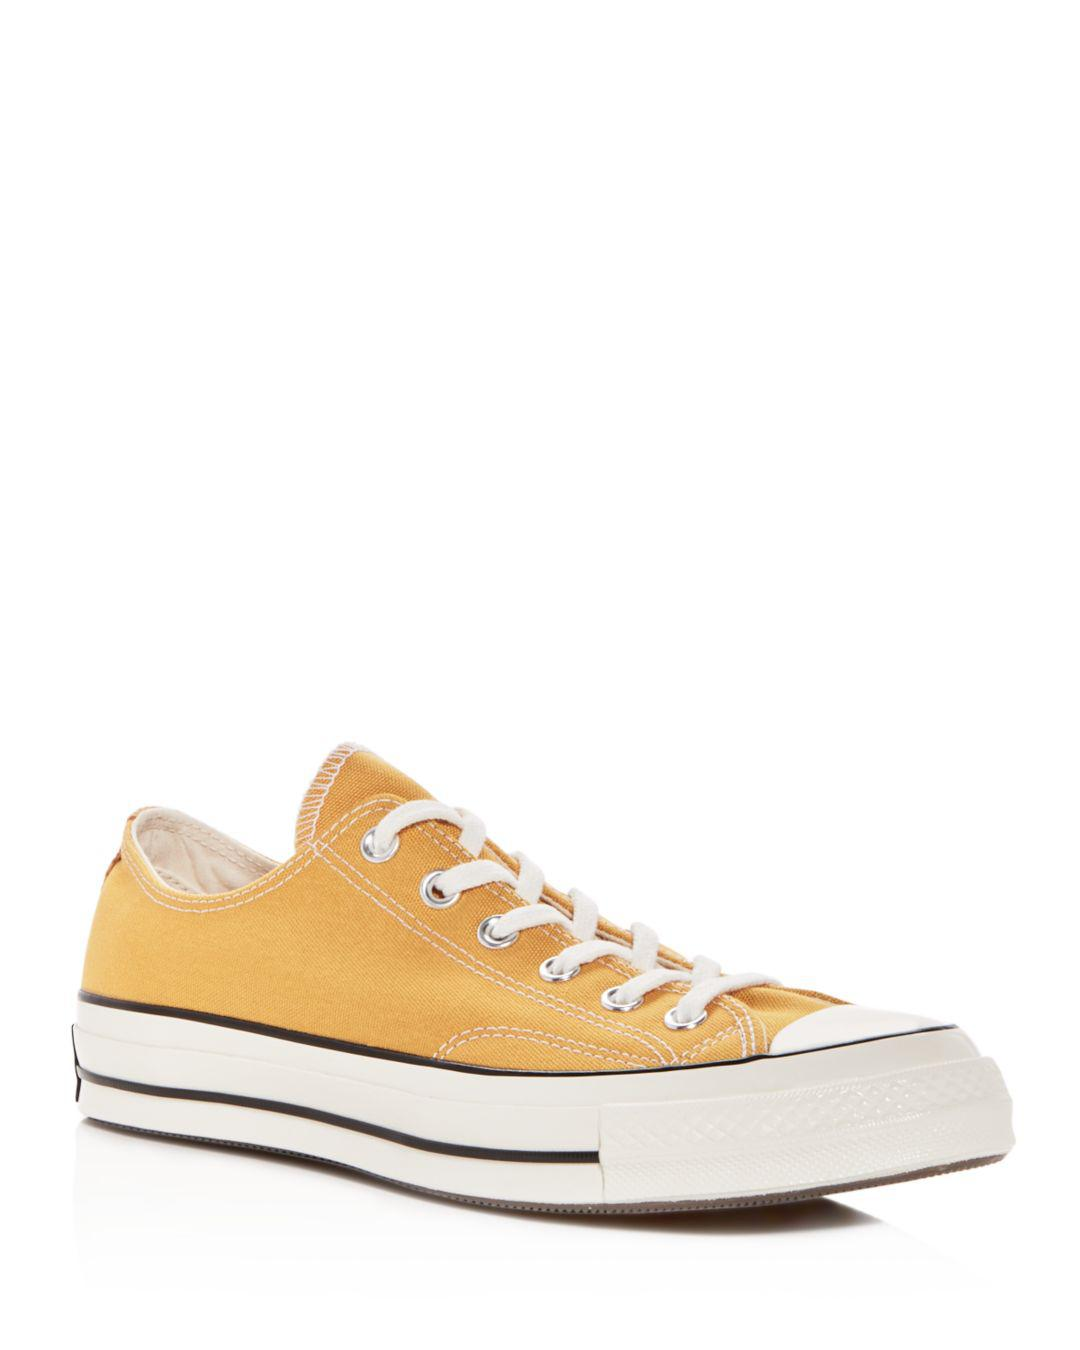 89e32e656ee1 Lyst - Converse Men s Chuck Taylor All Star Lace-up Sneakers for Men